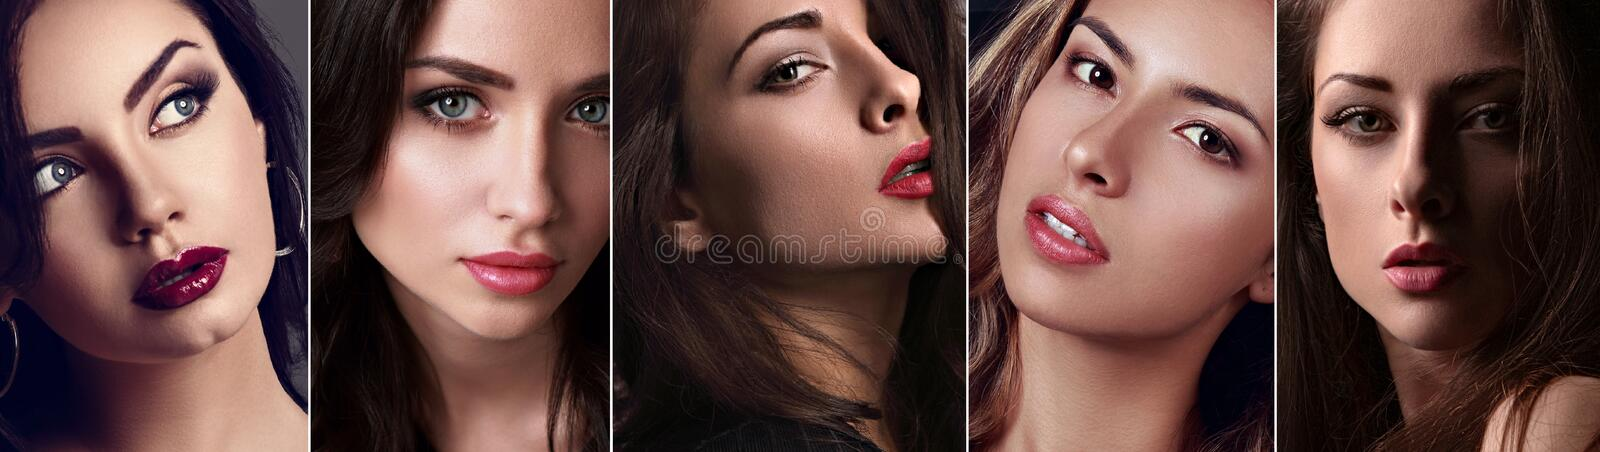 Beautiful collage of sexy bright makeup emotional women with bright lips and effect eyes Closeup stock images